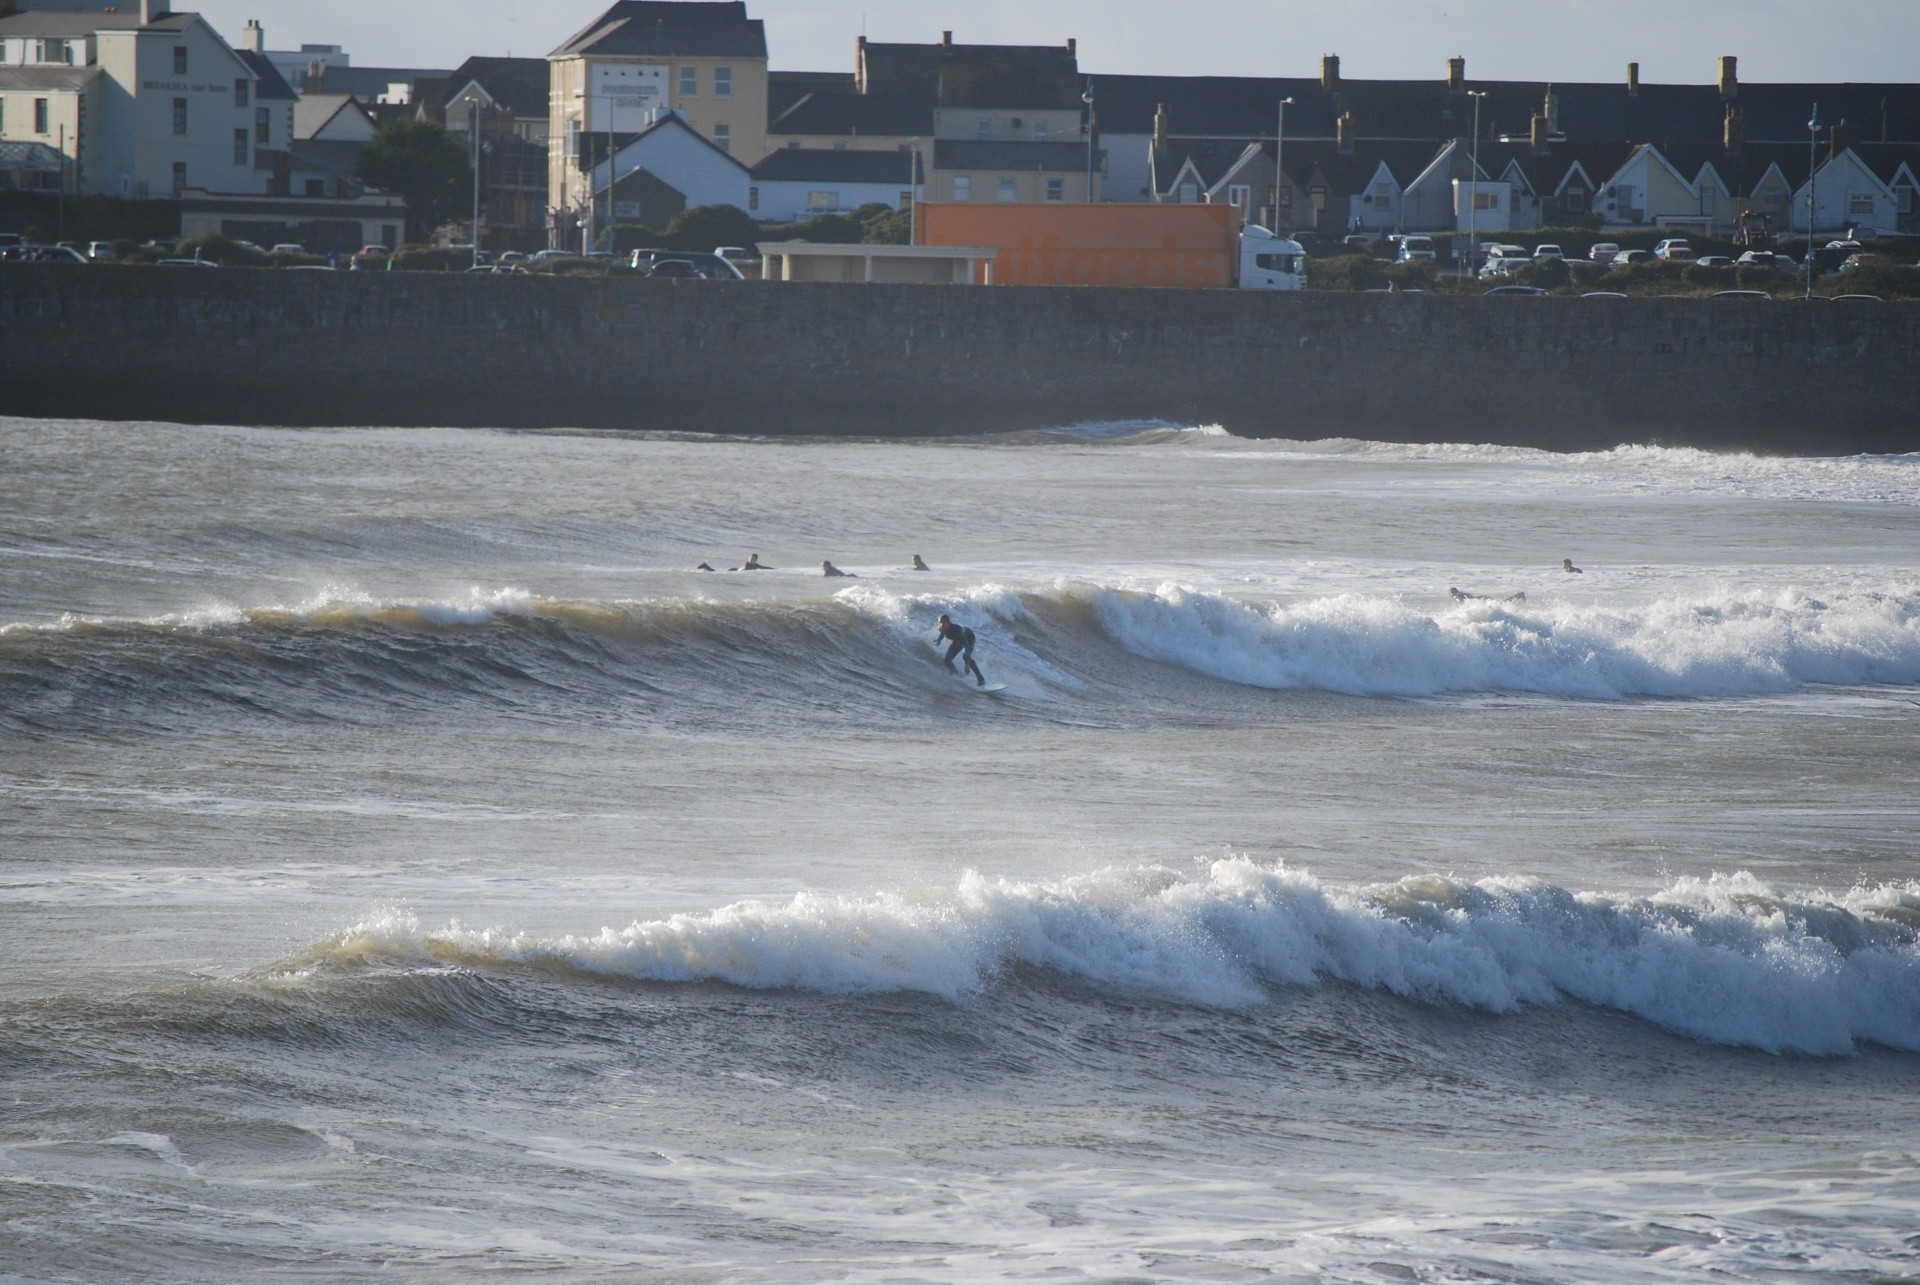 Roger Bickerstaff's photo of Porthcawl - Coney Beach